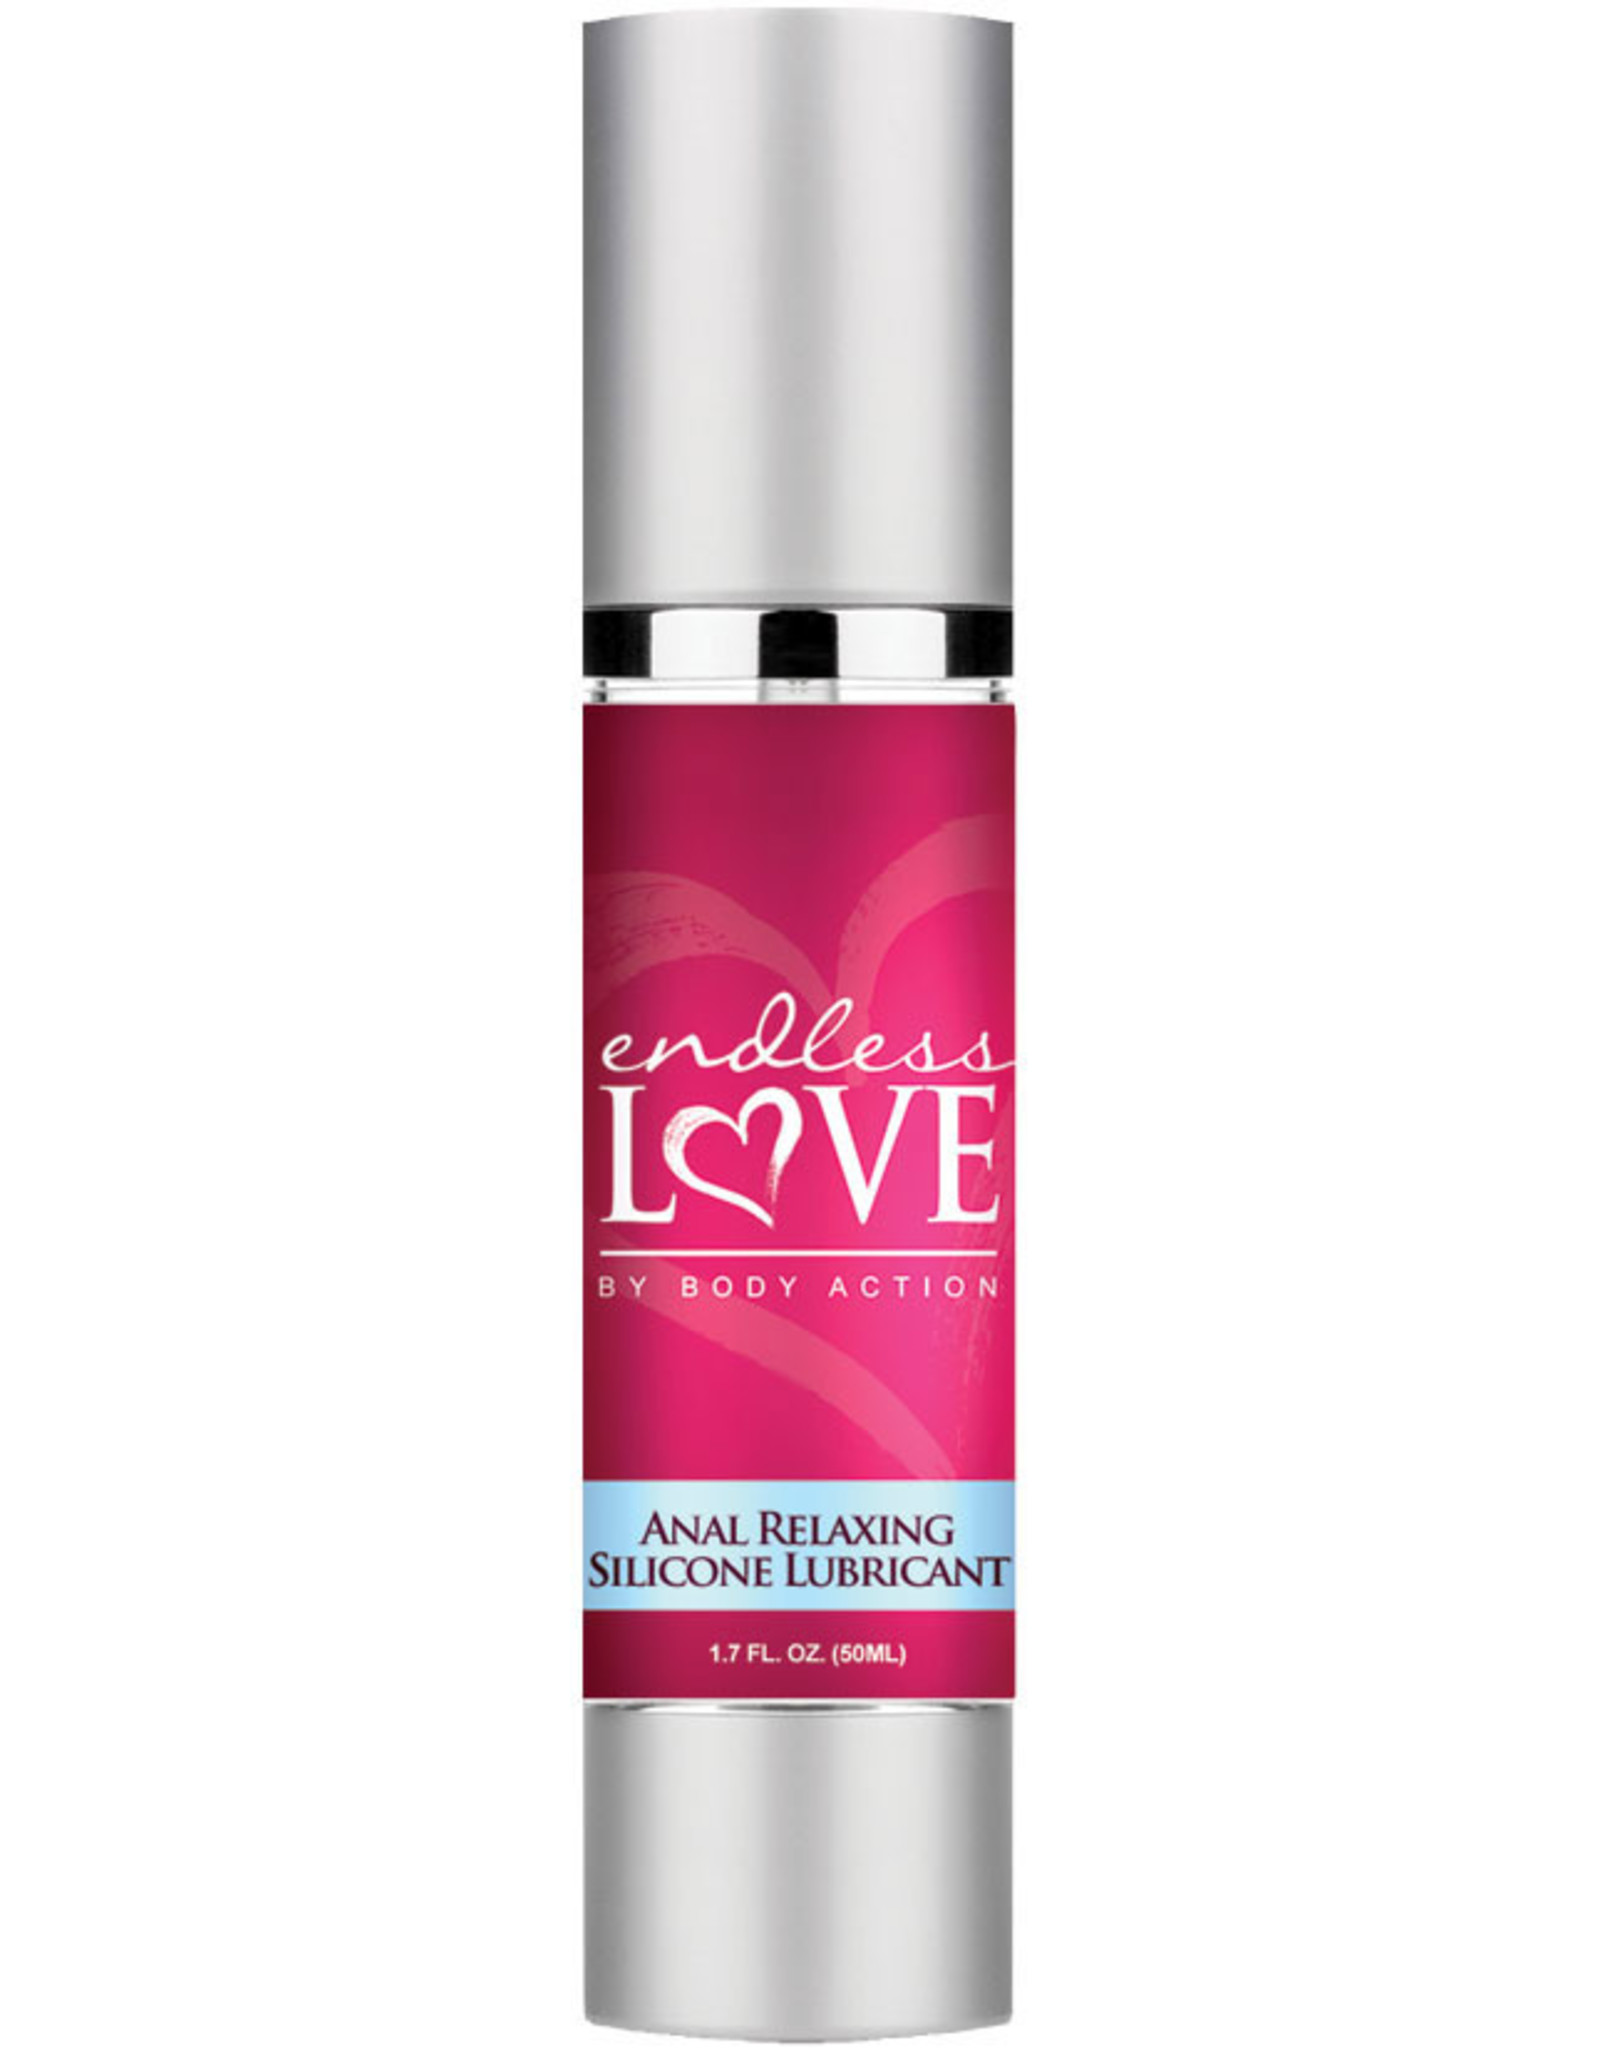 Endless Love Anal Relaxing Silicone Lube